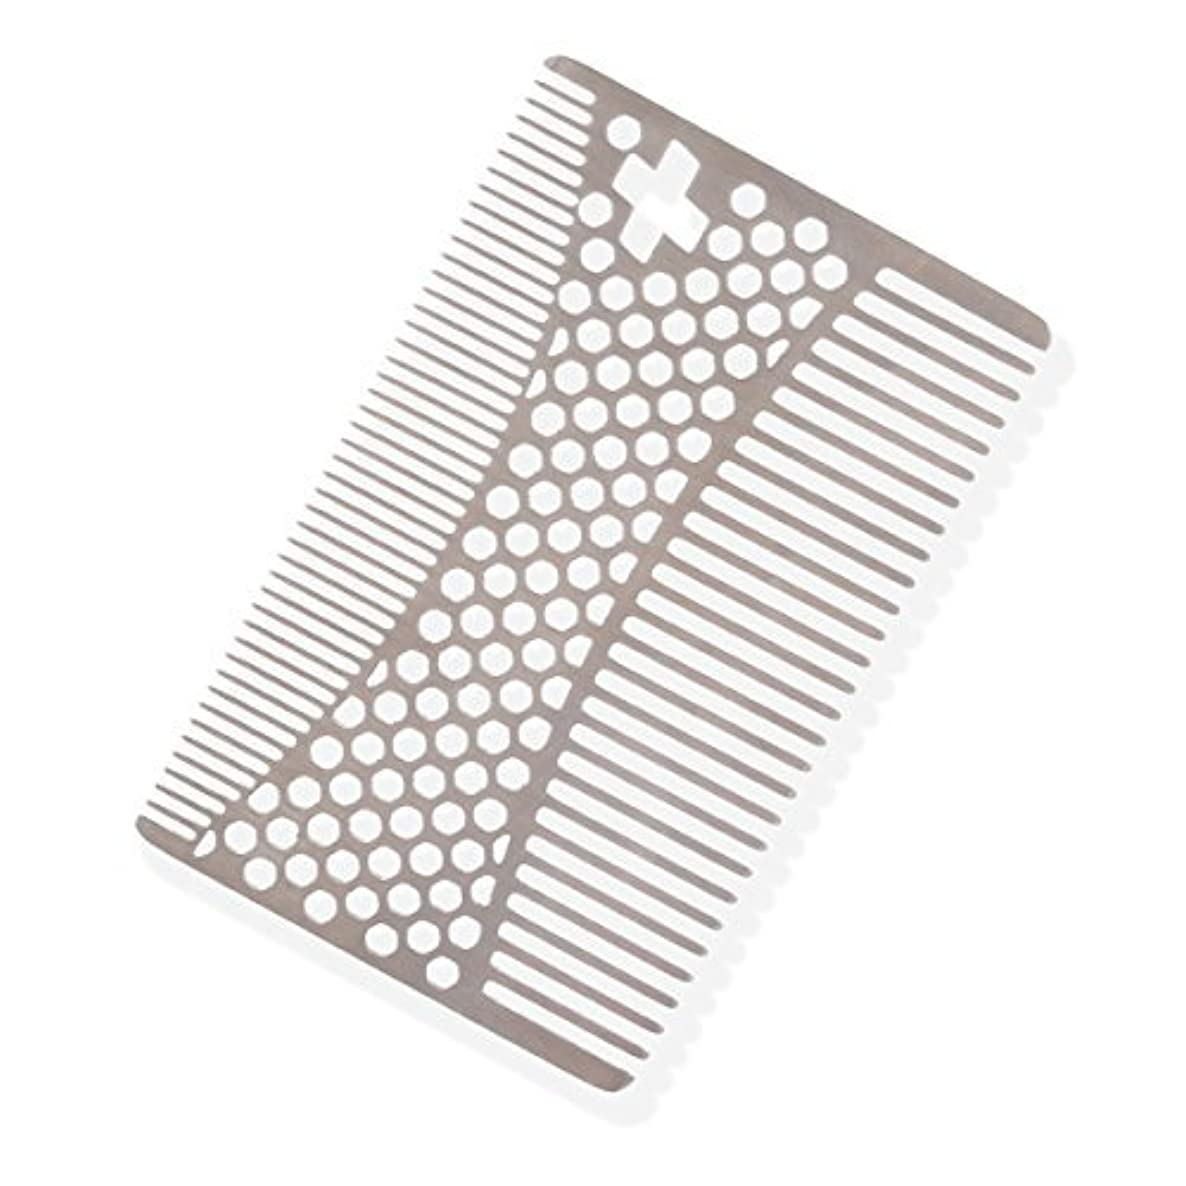 ピルファーサイトライン放つSHARPSWISS Credit Card Pocket Men Hair and Beard Comb Short - Stainless Steel [並行輸入品]